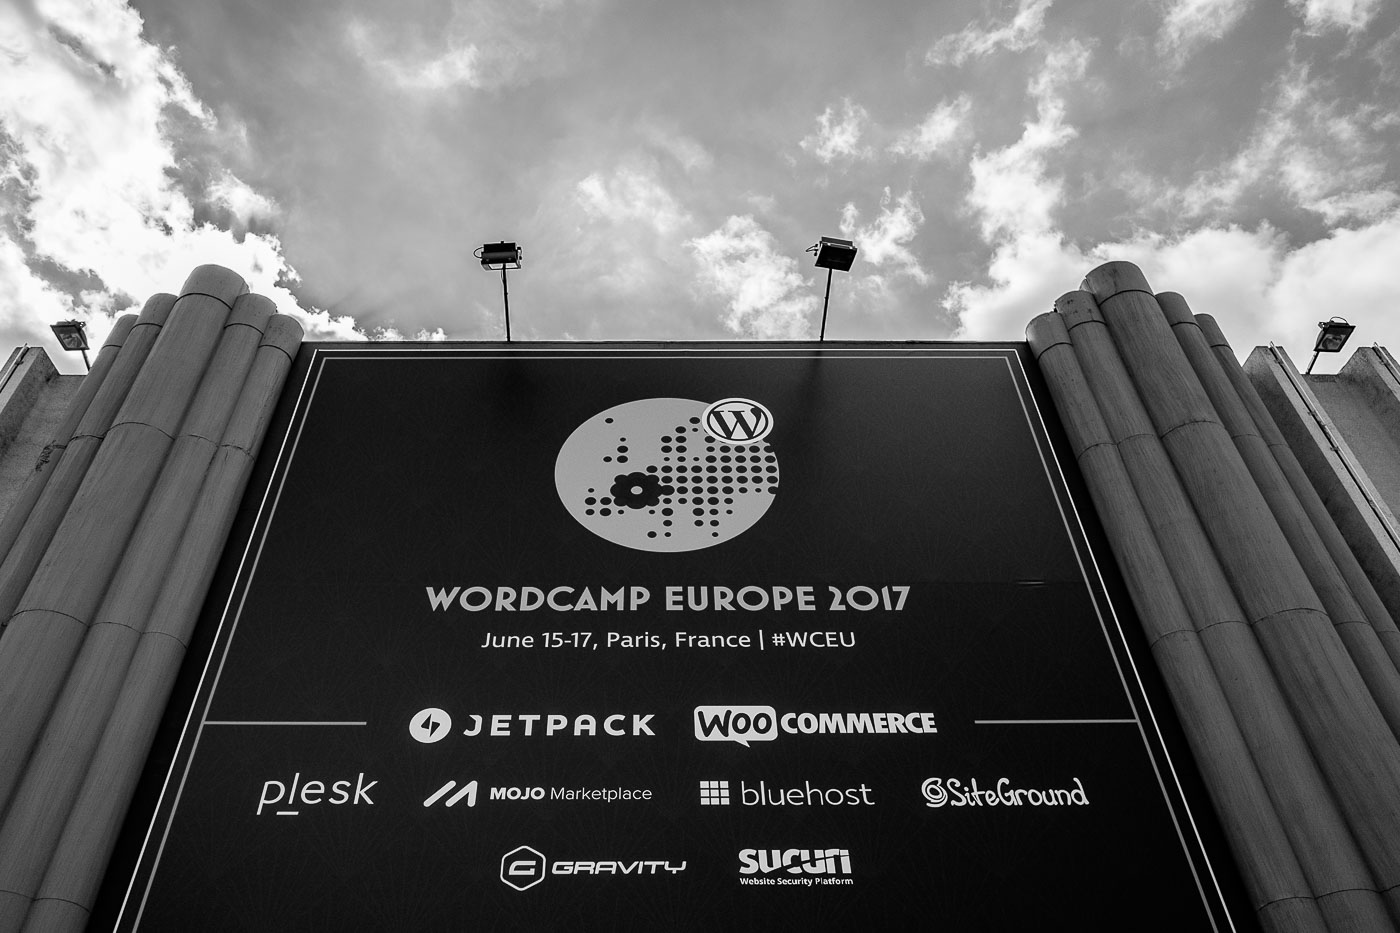 A huge billboard announcing WordCamp Europe 2017